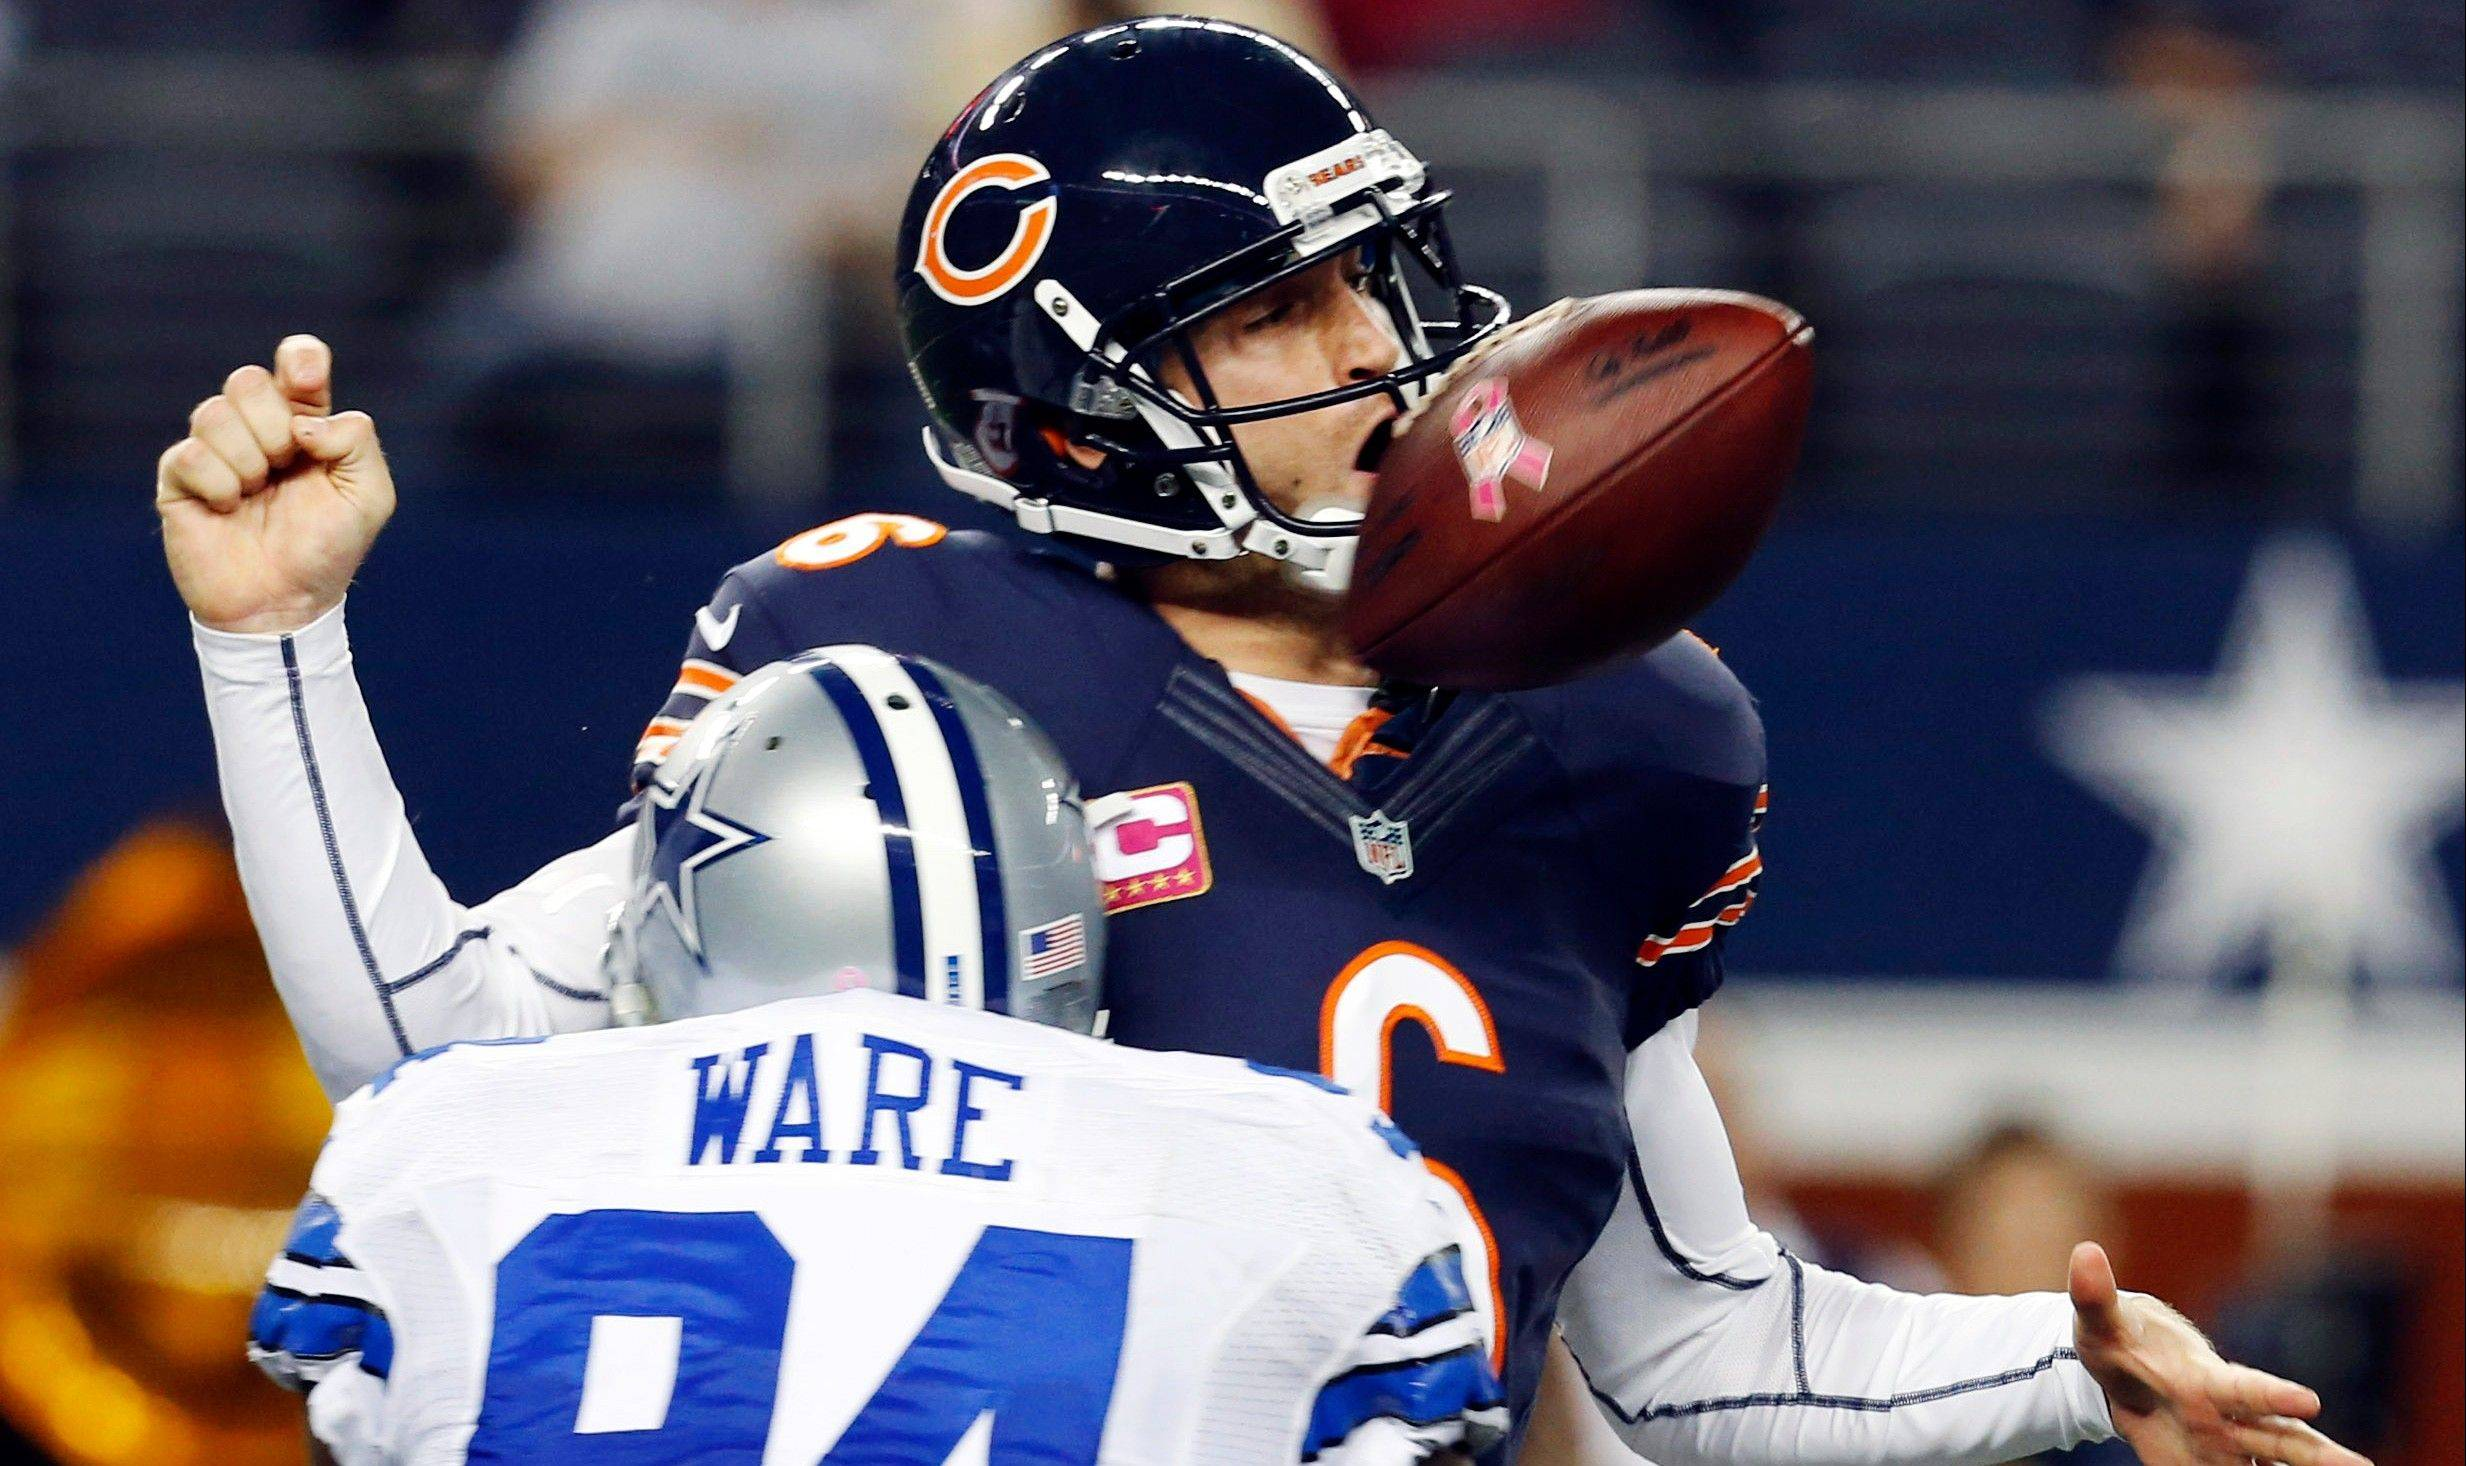 DeMarcus Ware of the Cowboys crashes into Bears quarterback Jay Cutler, who fumbles the ball in the second half Monday night. The Bears beat the host Cowboys 34-19.